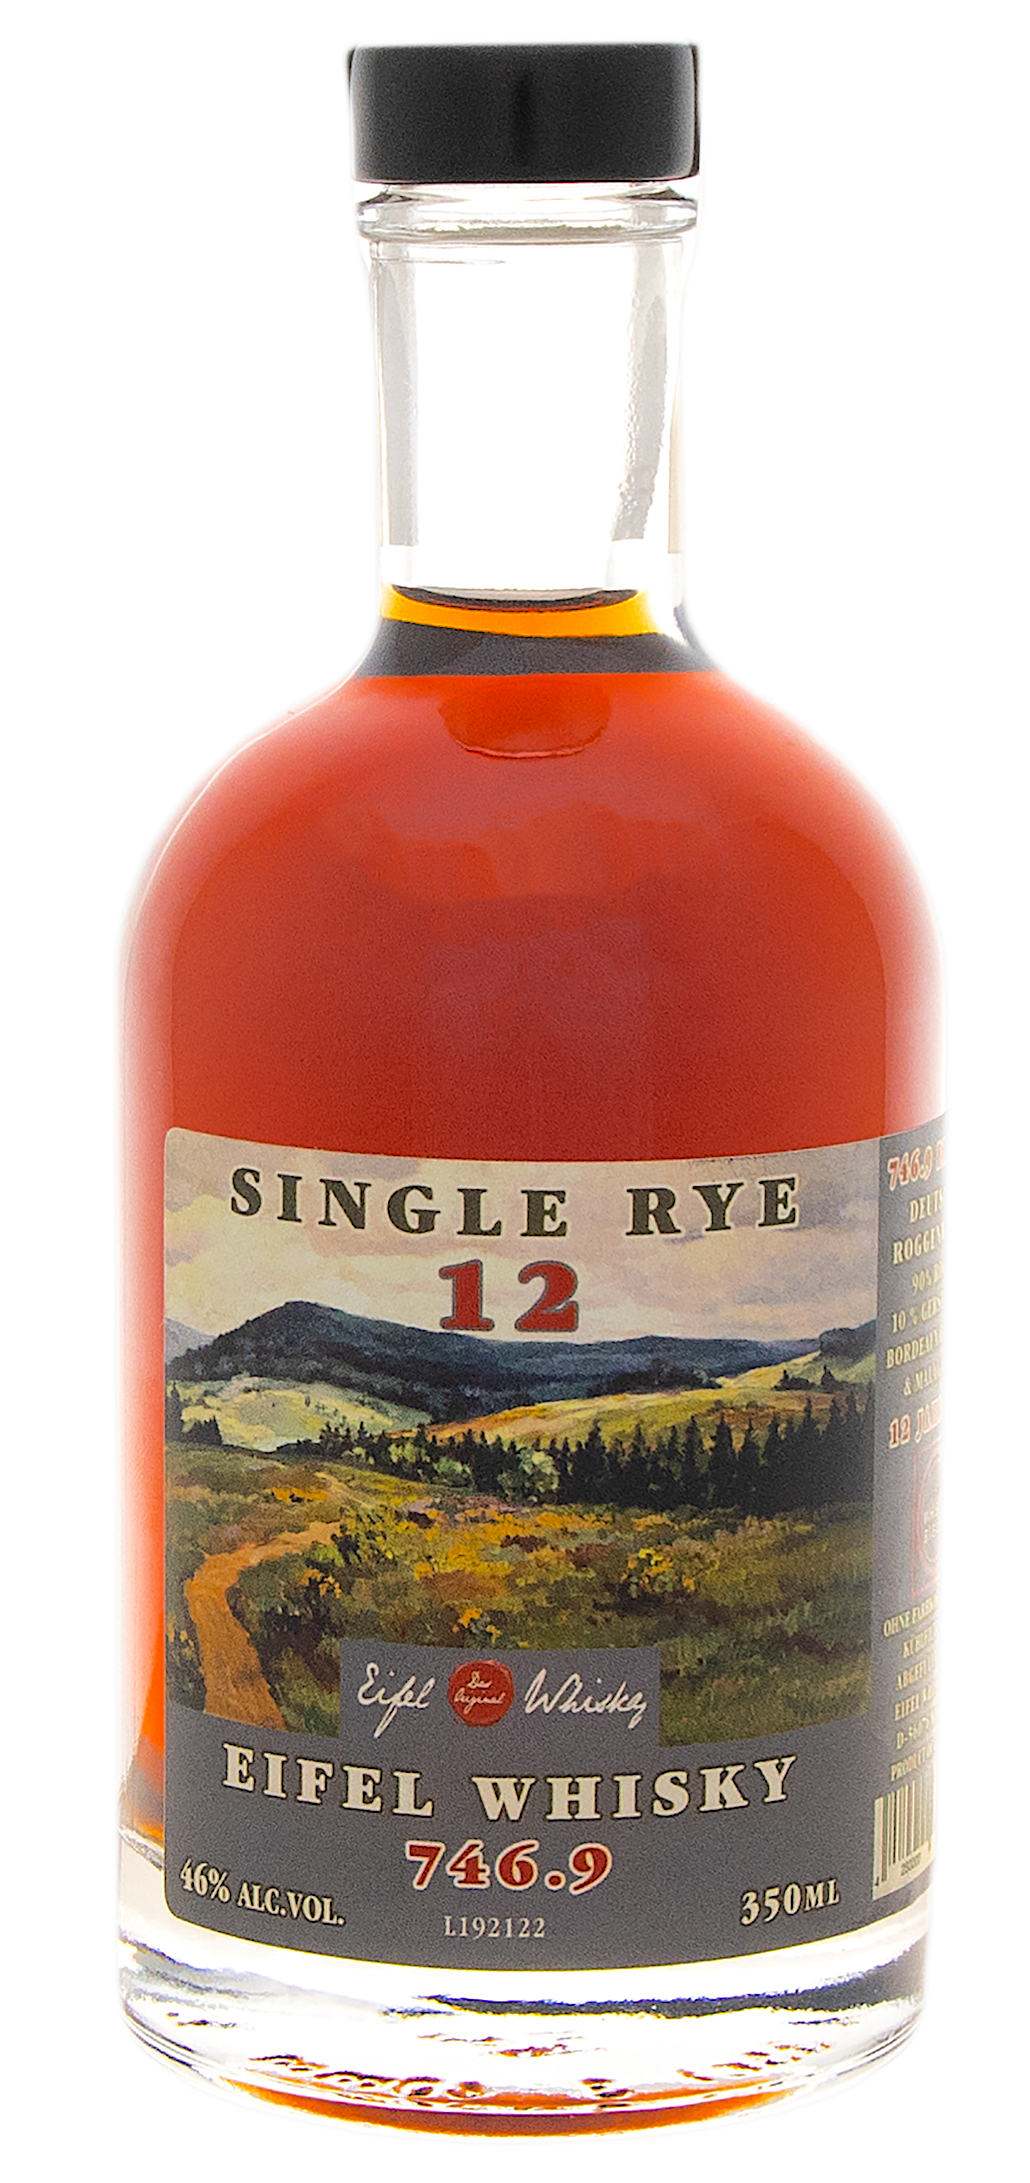 EIFEL WHISKY 746.9 SINGLE RYE